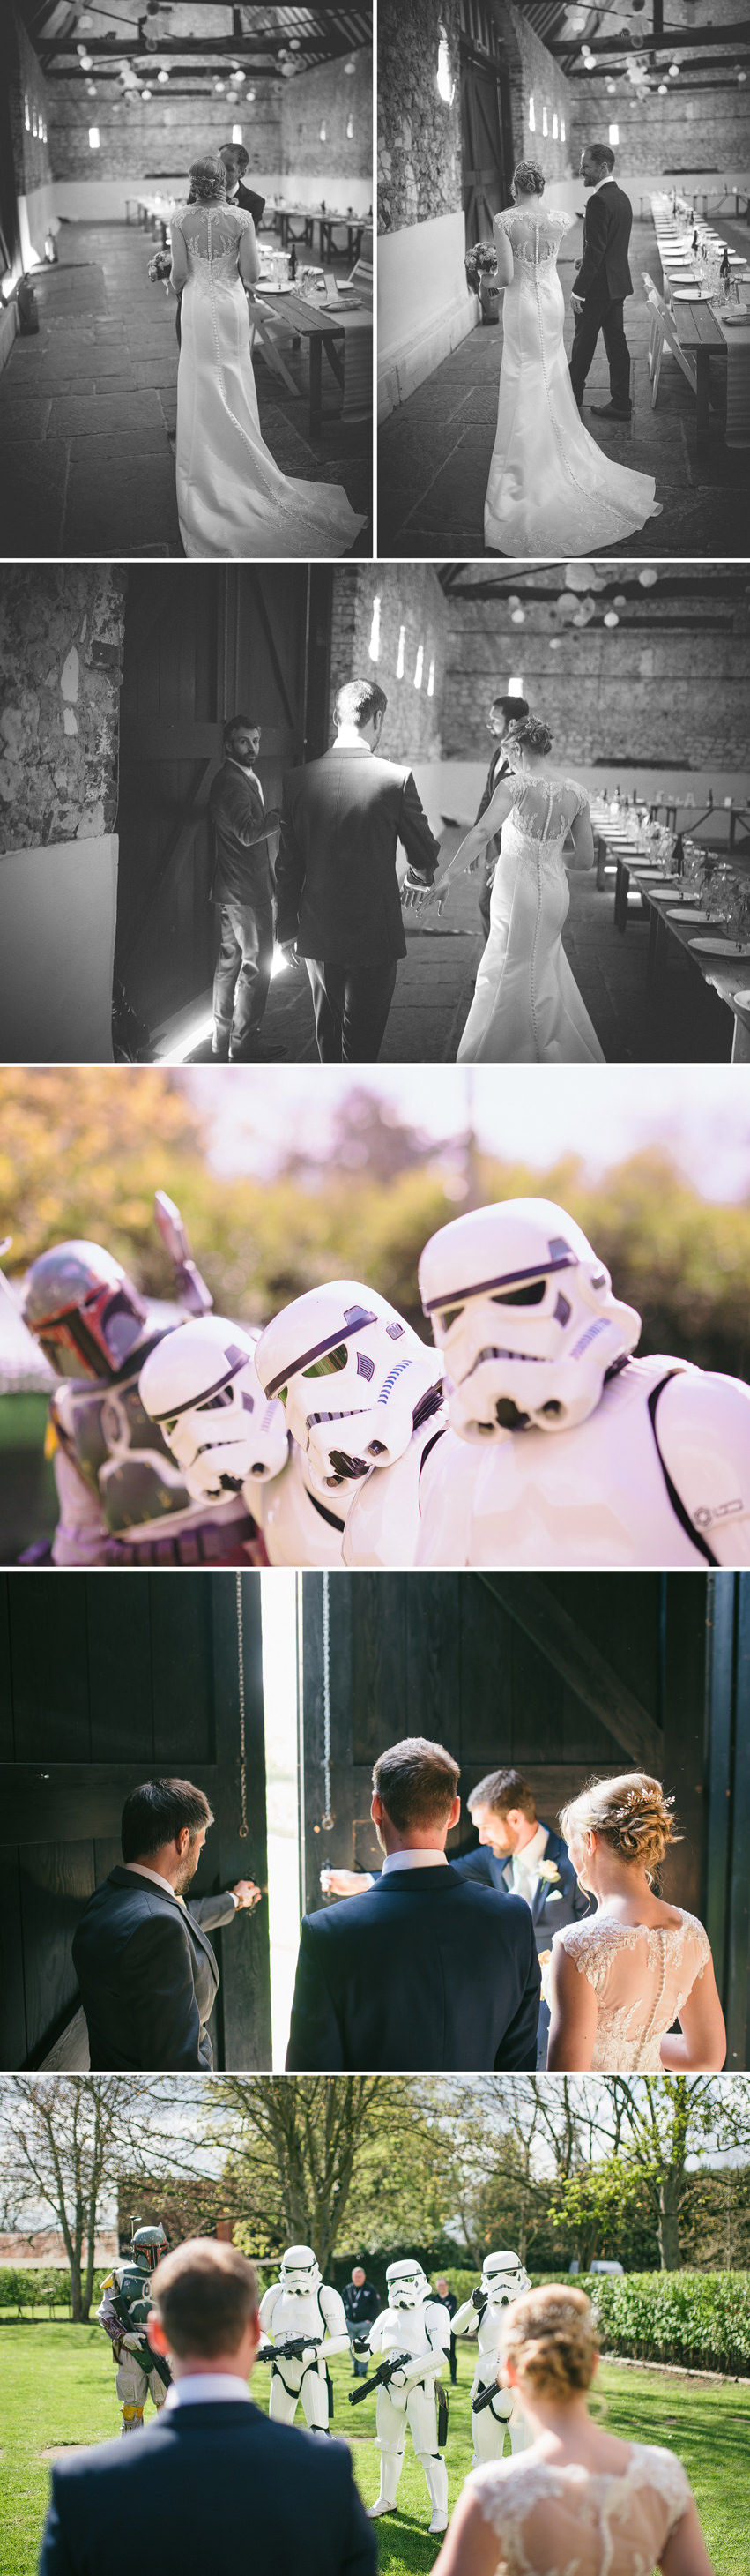 storm troopers at a wedding